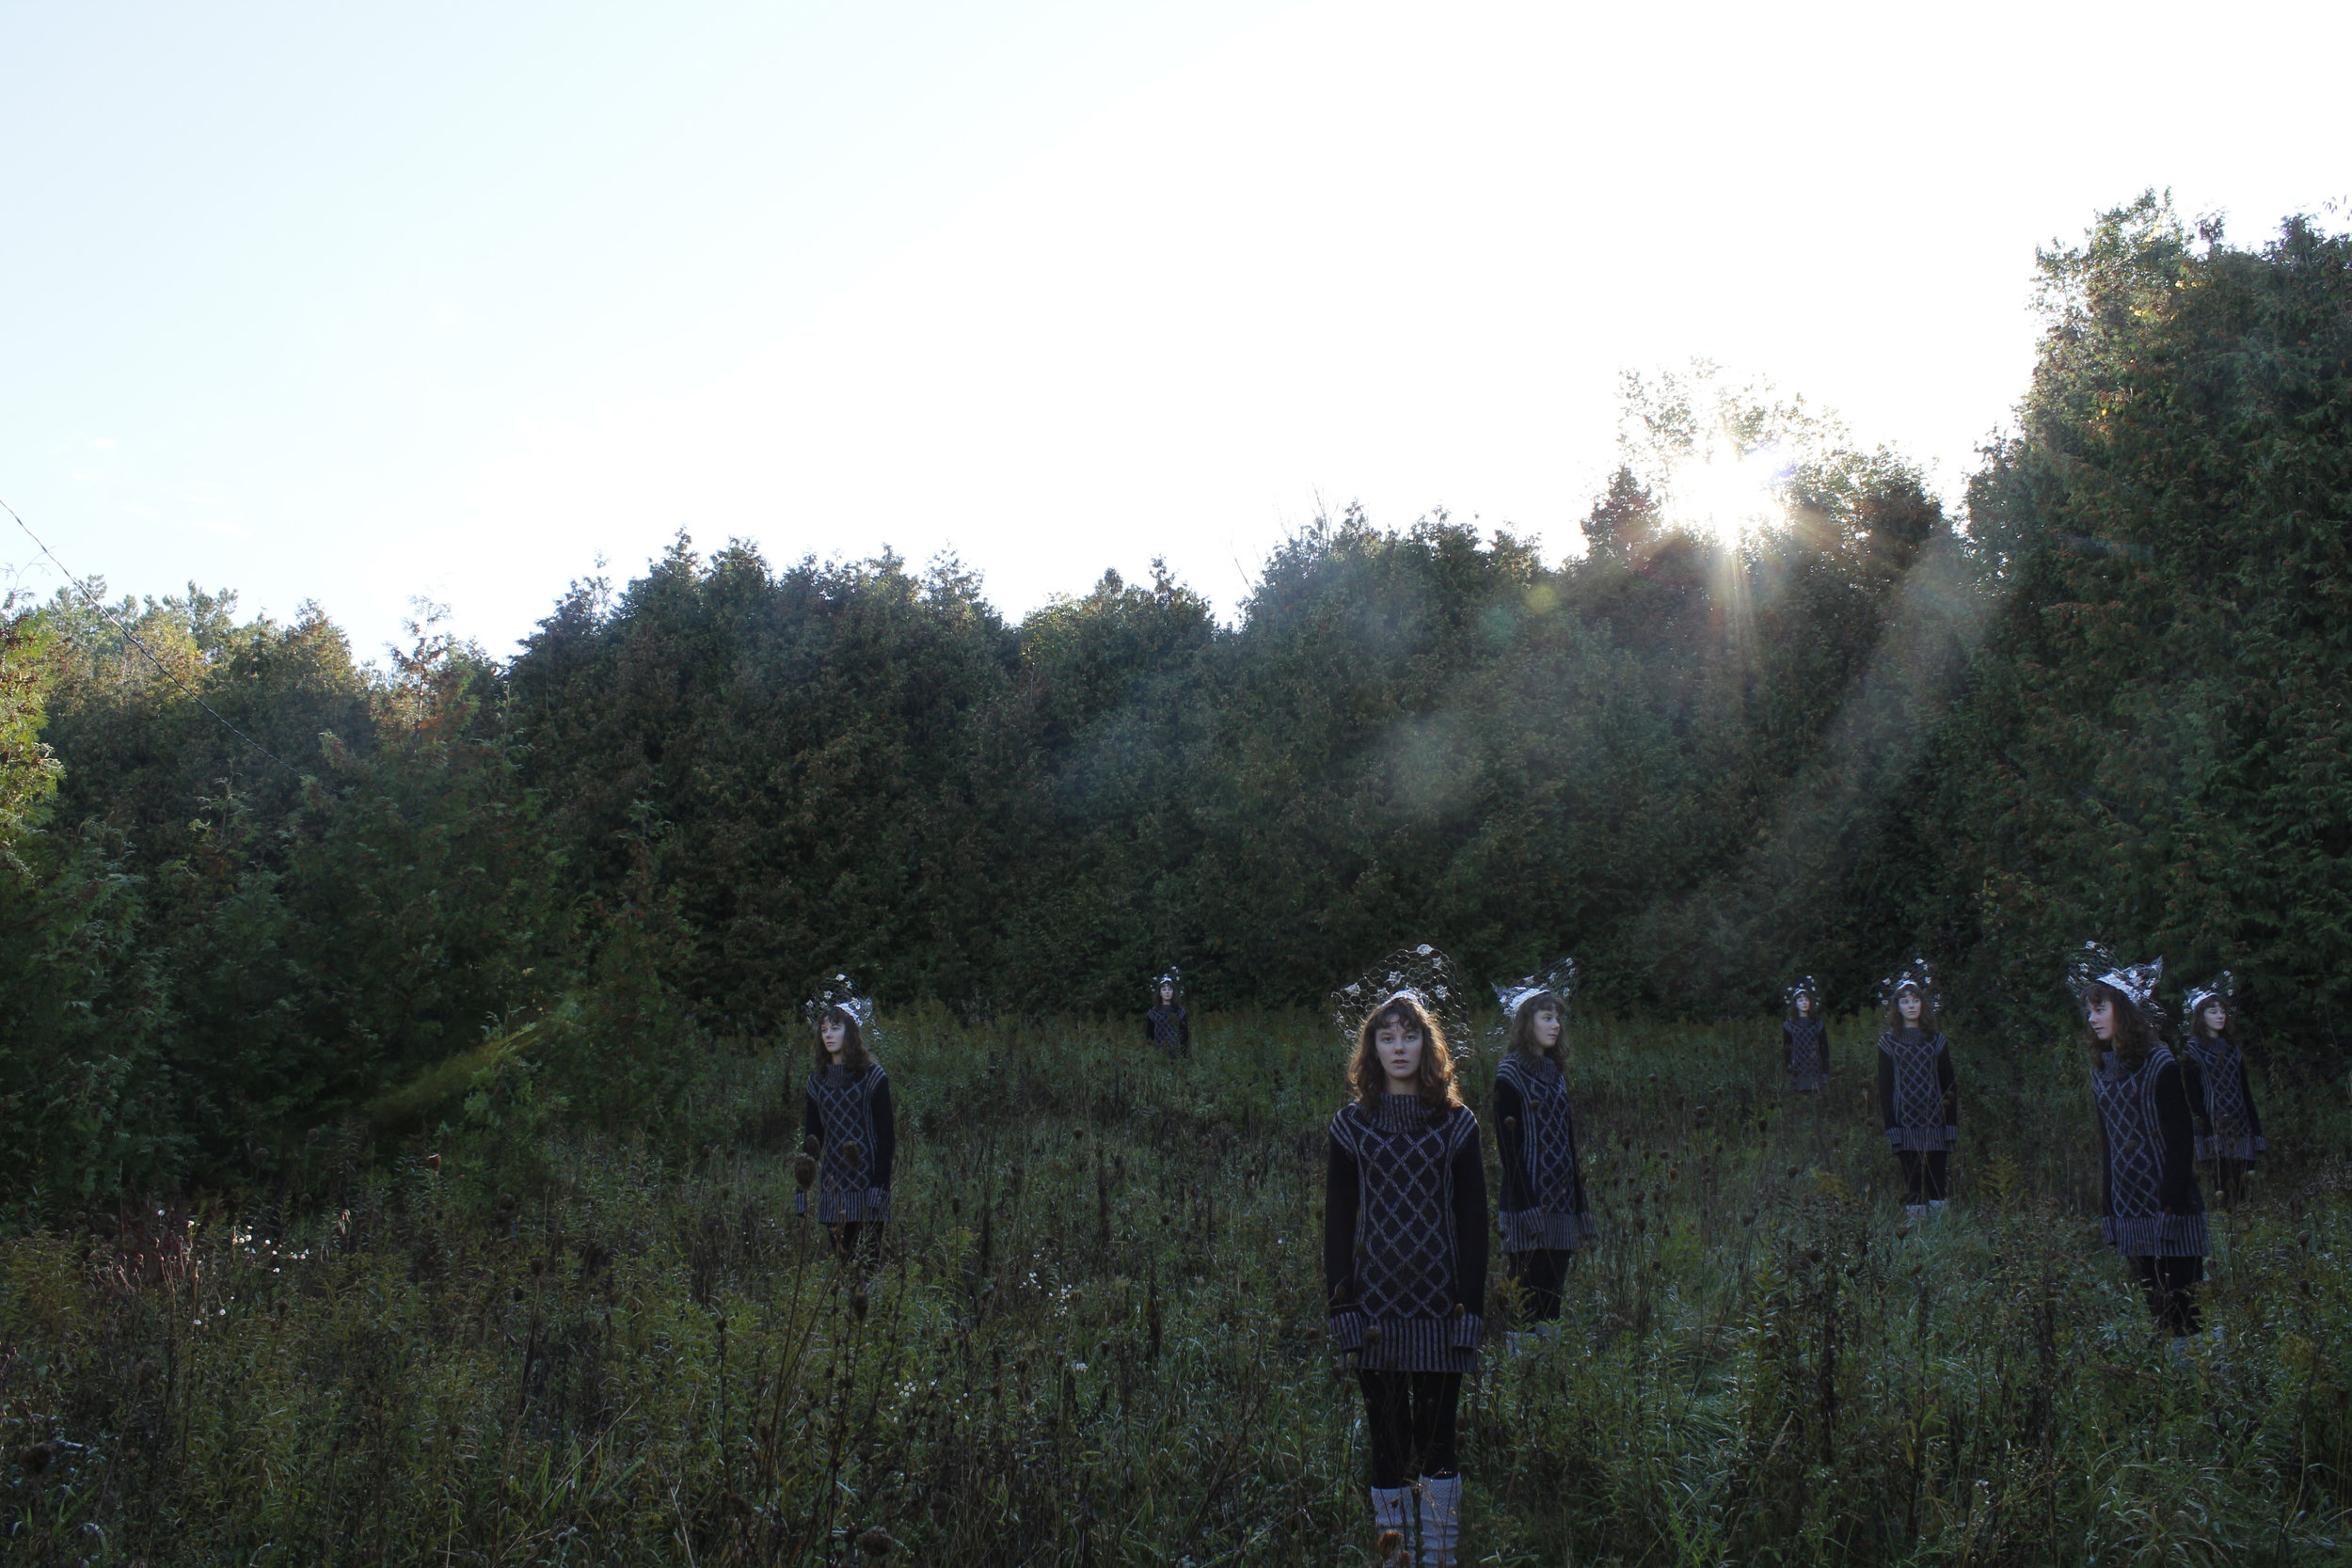 Toil&Foil - Toil & Foil (2017) is a site specific set of performative photographs taken at Island Lake Conservation Area in Orangeville, Ontario and at Forks of the Credit Creek in Caledon, Ontario. Taking a hand-made tin-foil witch hat to these rural landscapes creates an uncanny valley effect. The lonesome figure is multiplied, creating doppelgangers. The photographs play between the staged and unstaged, the real and fake, the humorous and the lonely.